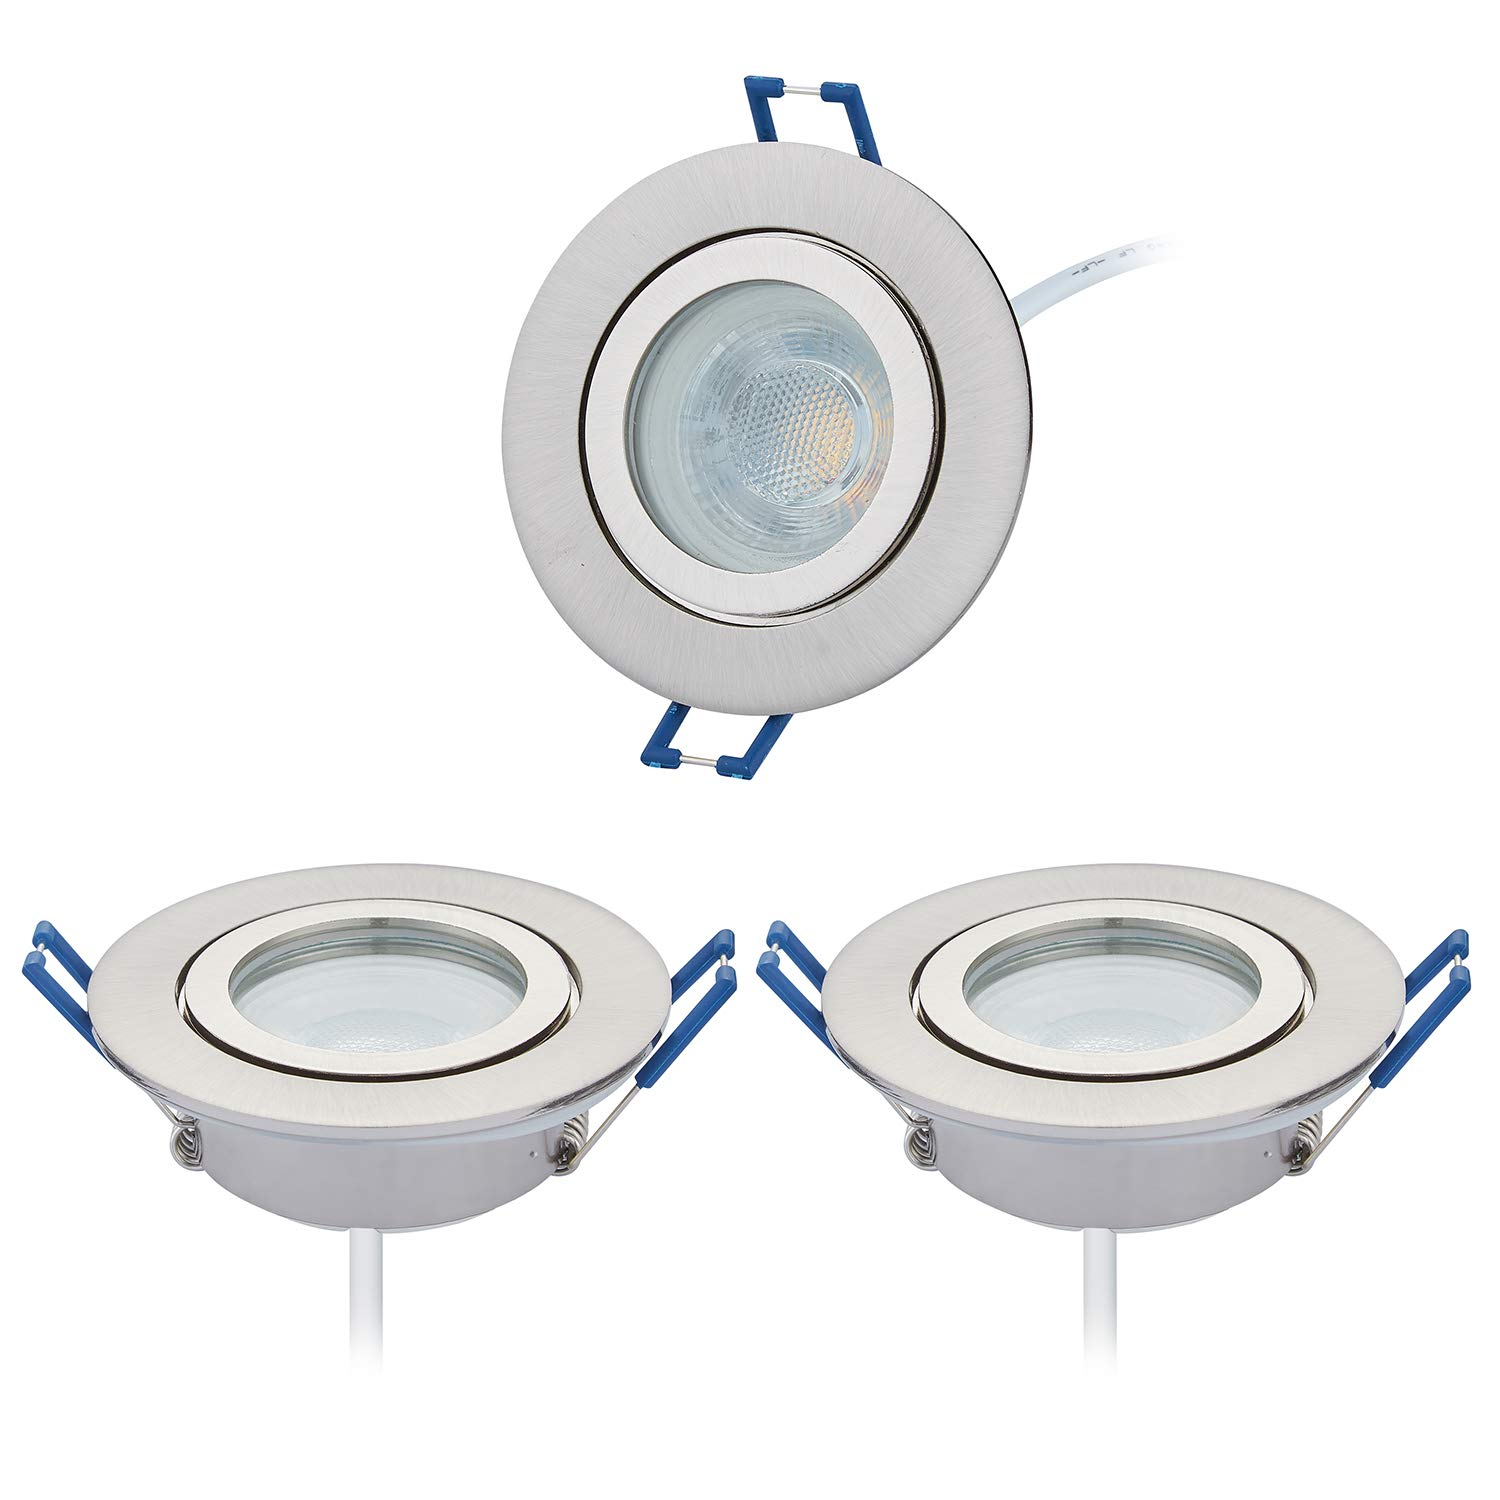 3 LED Recessed Spot Light Set IP44 with LED Spot Module 230 V 5 W, Neutral White, 4000 K, 60 ° Beam Angle/Wet Room/Bathroom, Dimmable, Hole 60 mm – Brushed Nickel [Energy Class A+] HC LIGHT